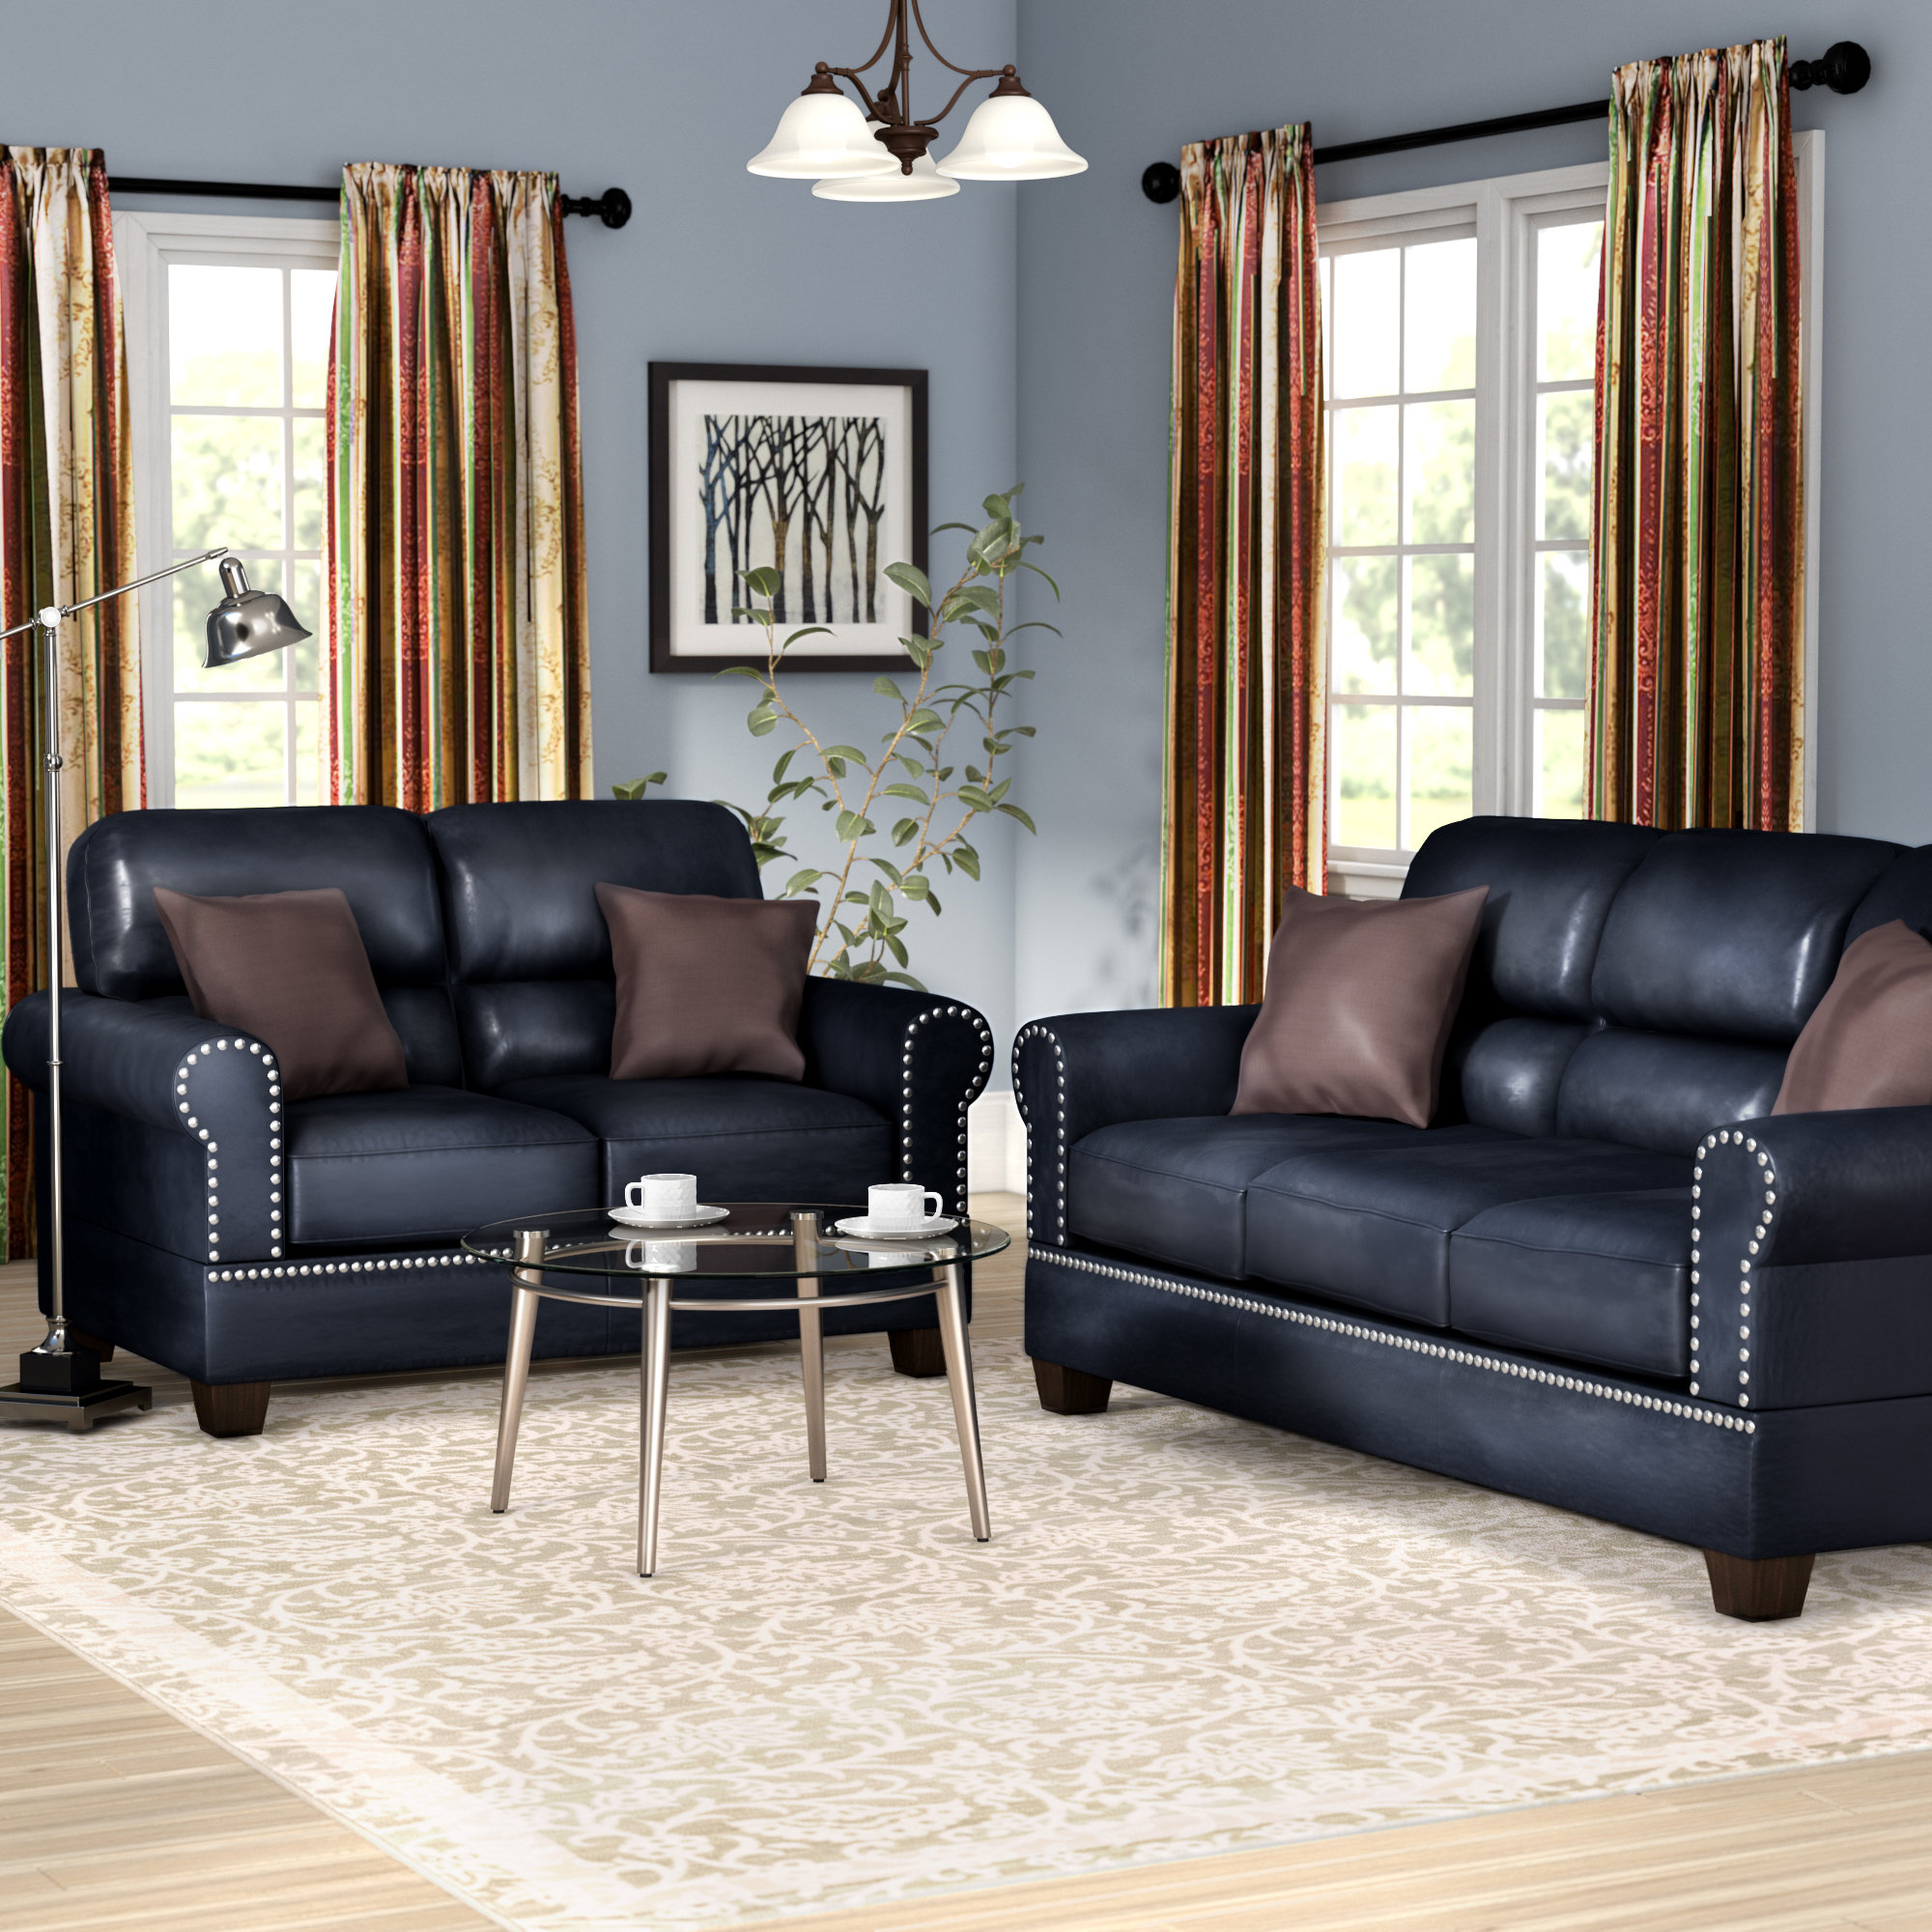 Boyster 2 Piece Living Room Set within 12 Genius Concepts of How to Makeover Living Room Set Cheap